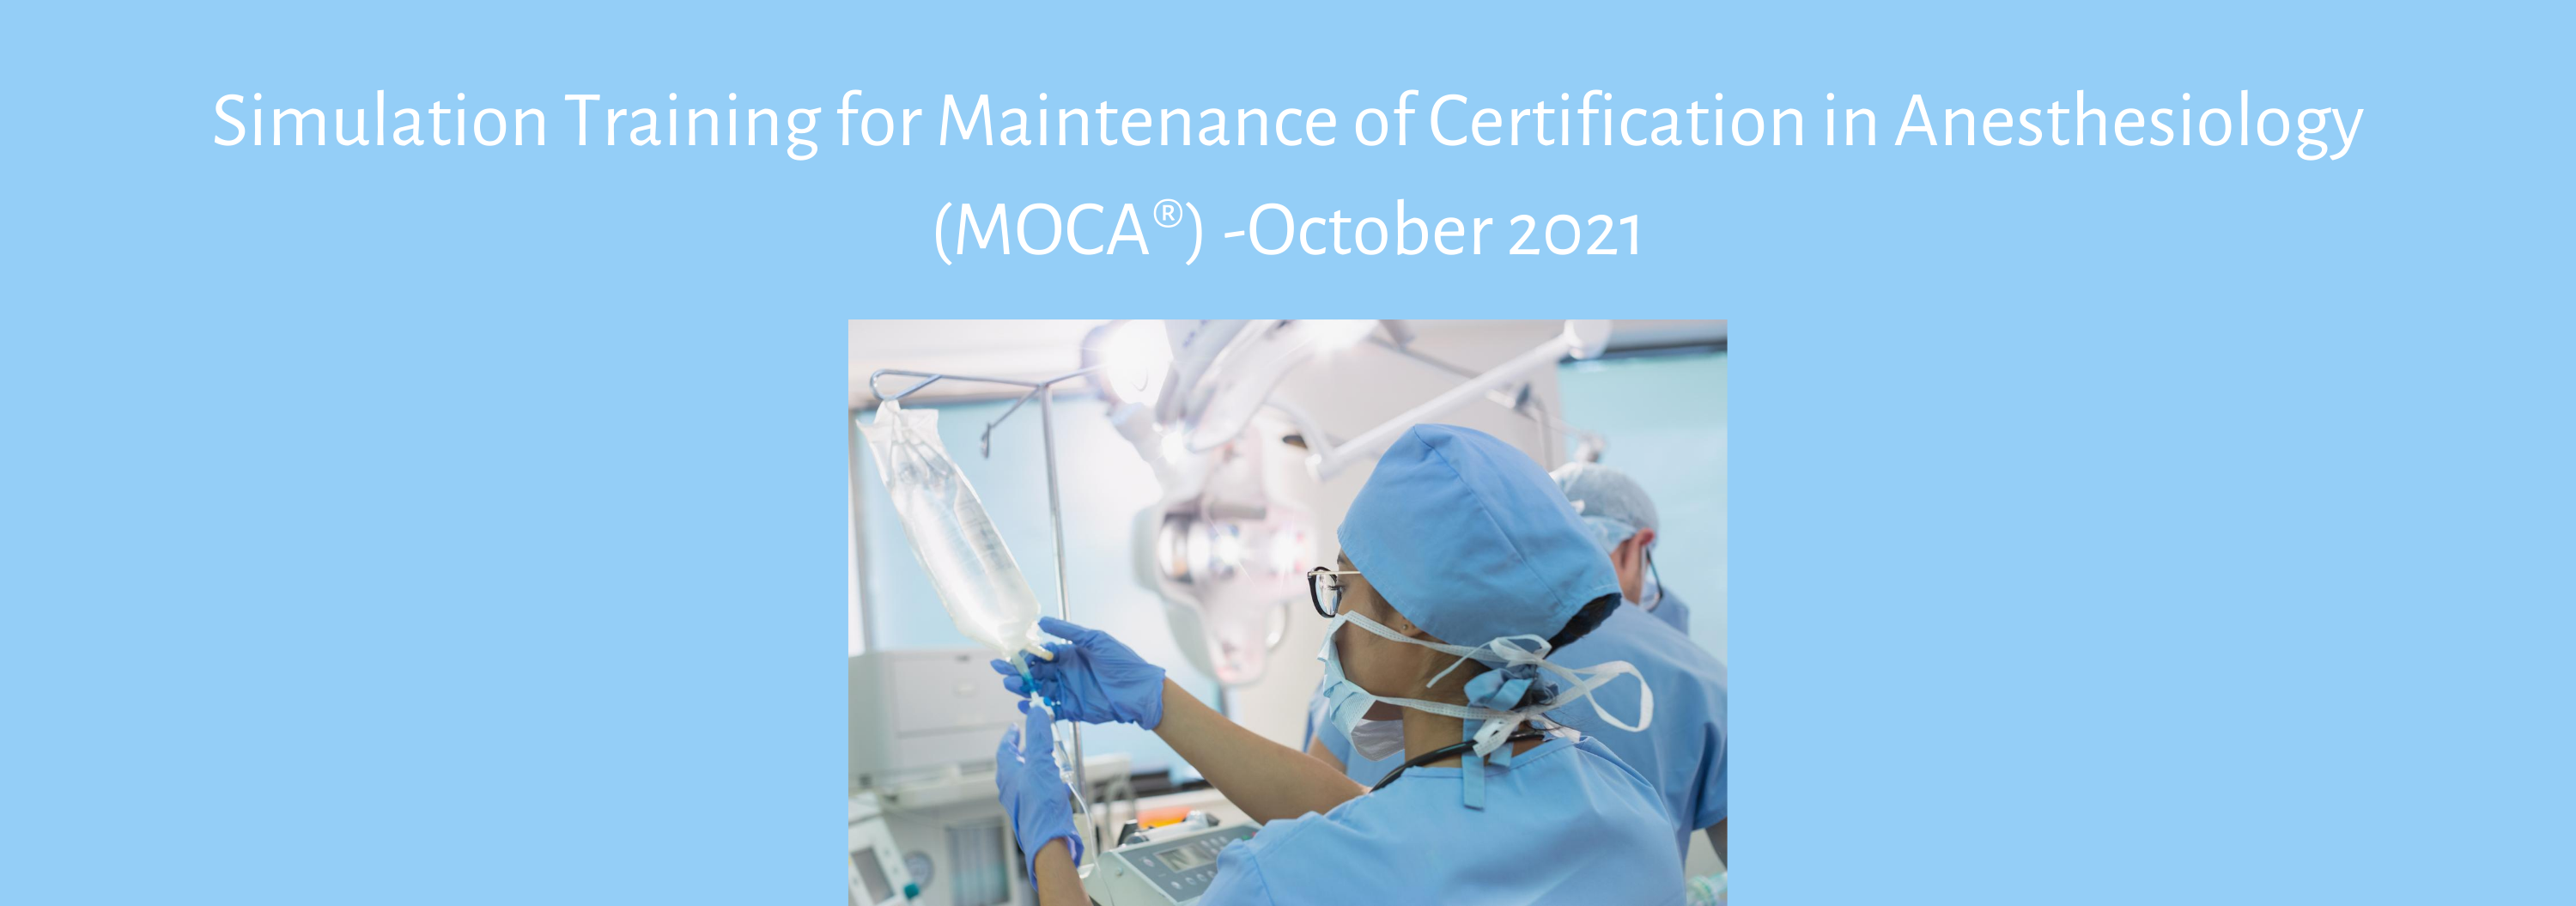 Simulation Training for Maintenance of Certification in Anesthesiology (MOCA) - October 2021 Banner